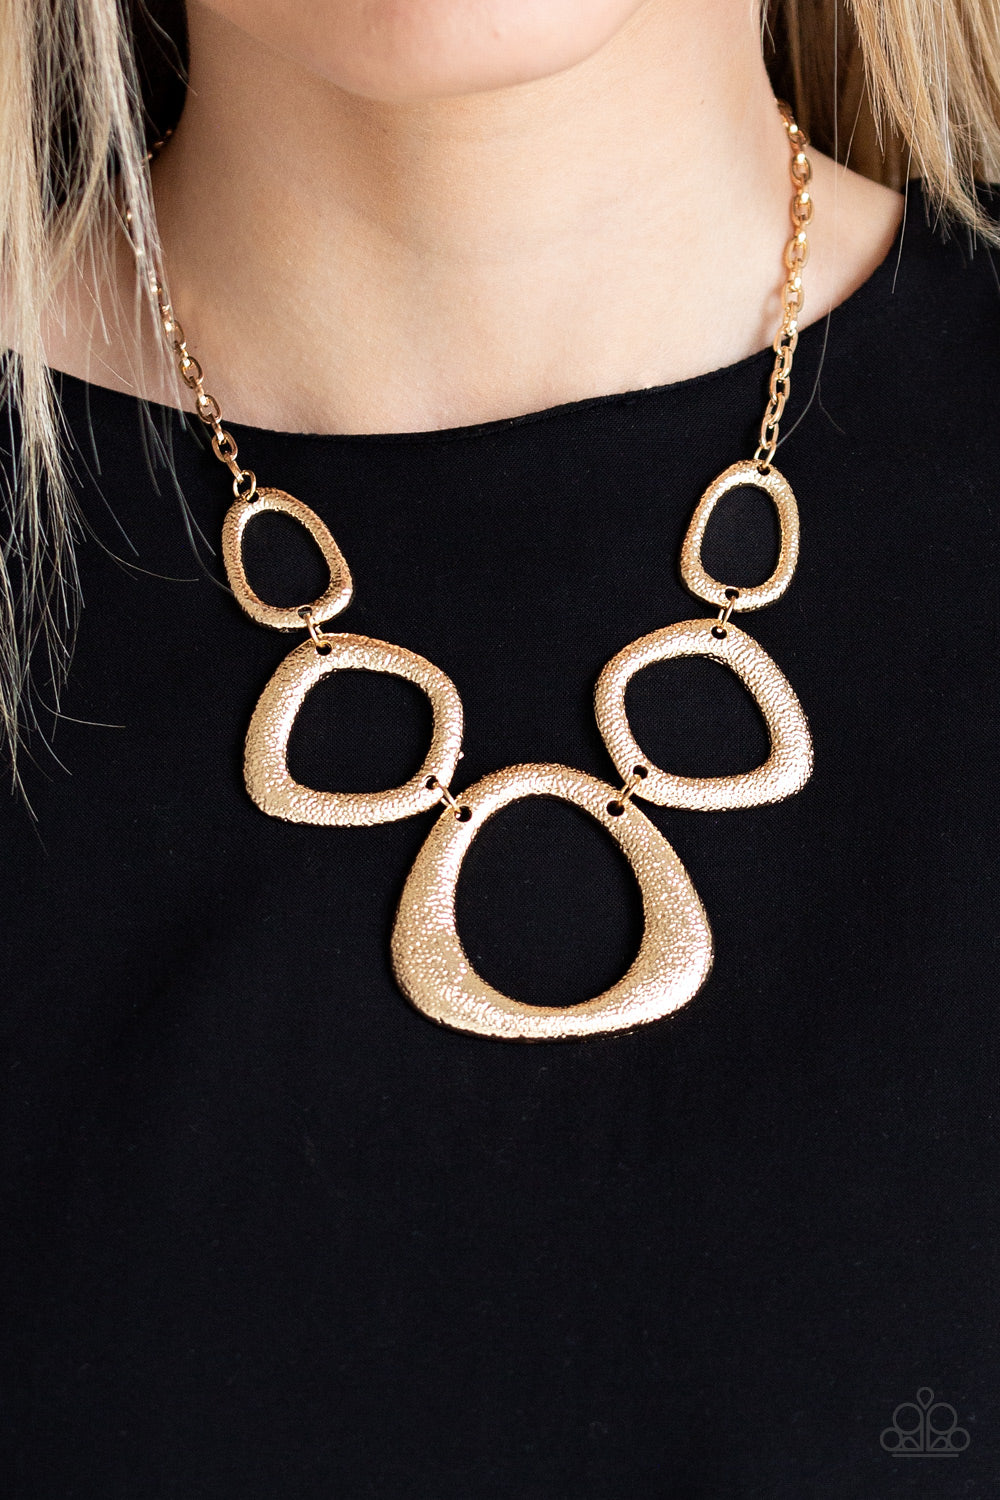 Paparazzi Accessories Backstreet Bandit - Gold Necklaces - Lady T Accessories